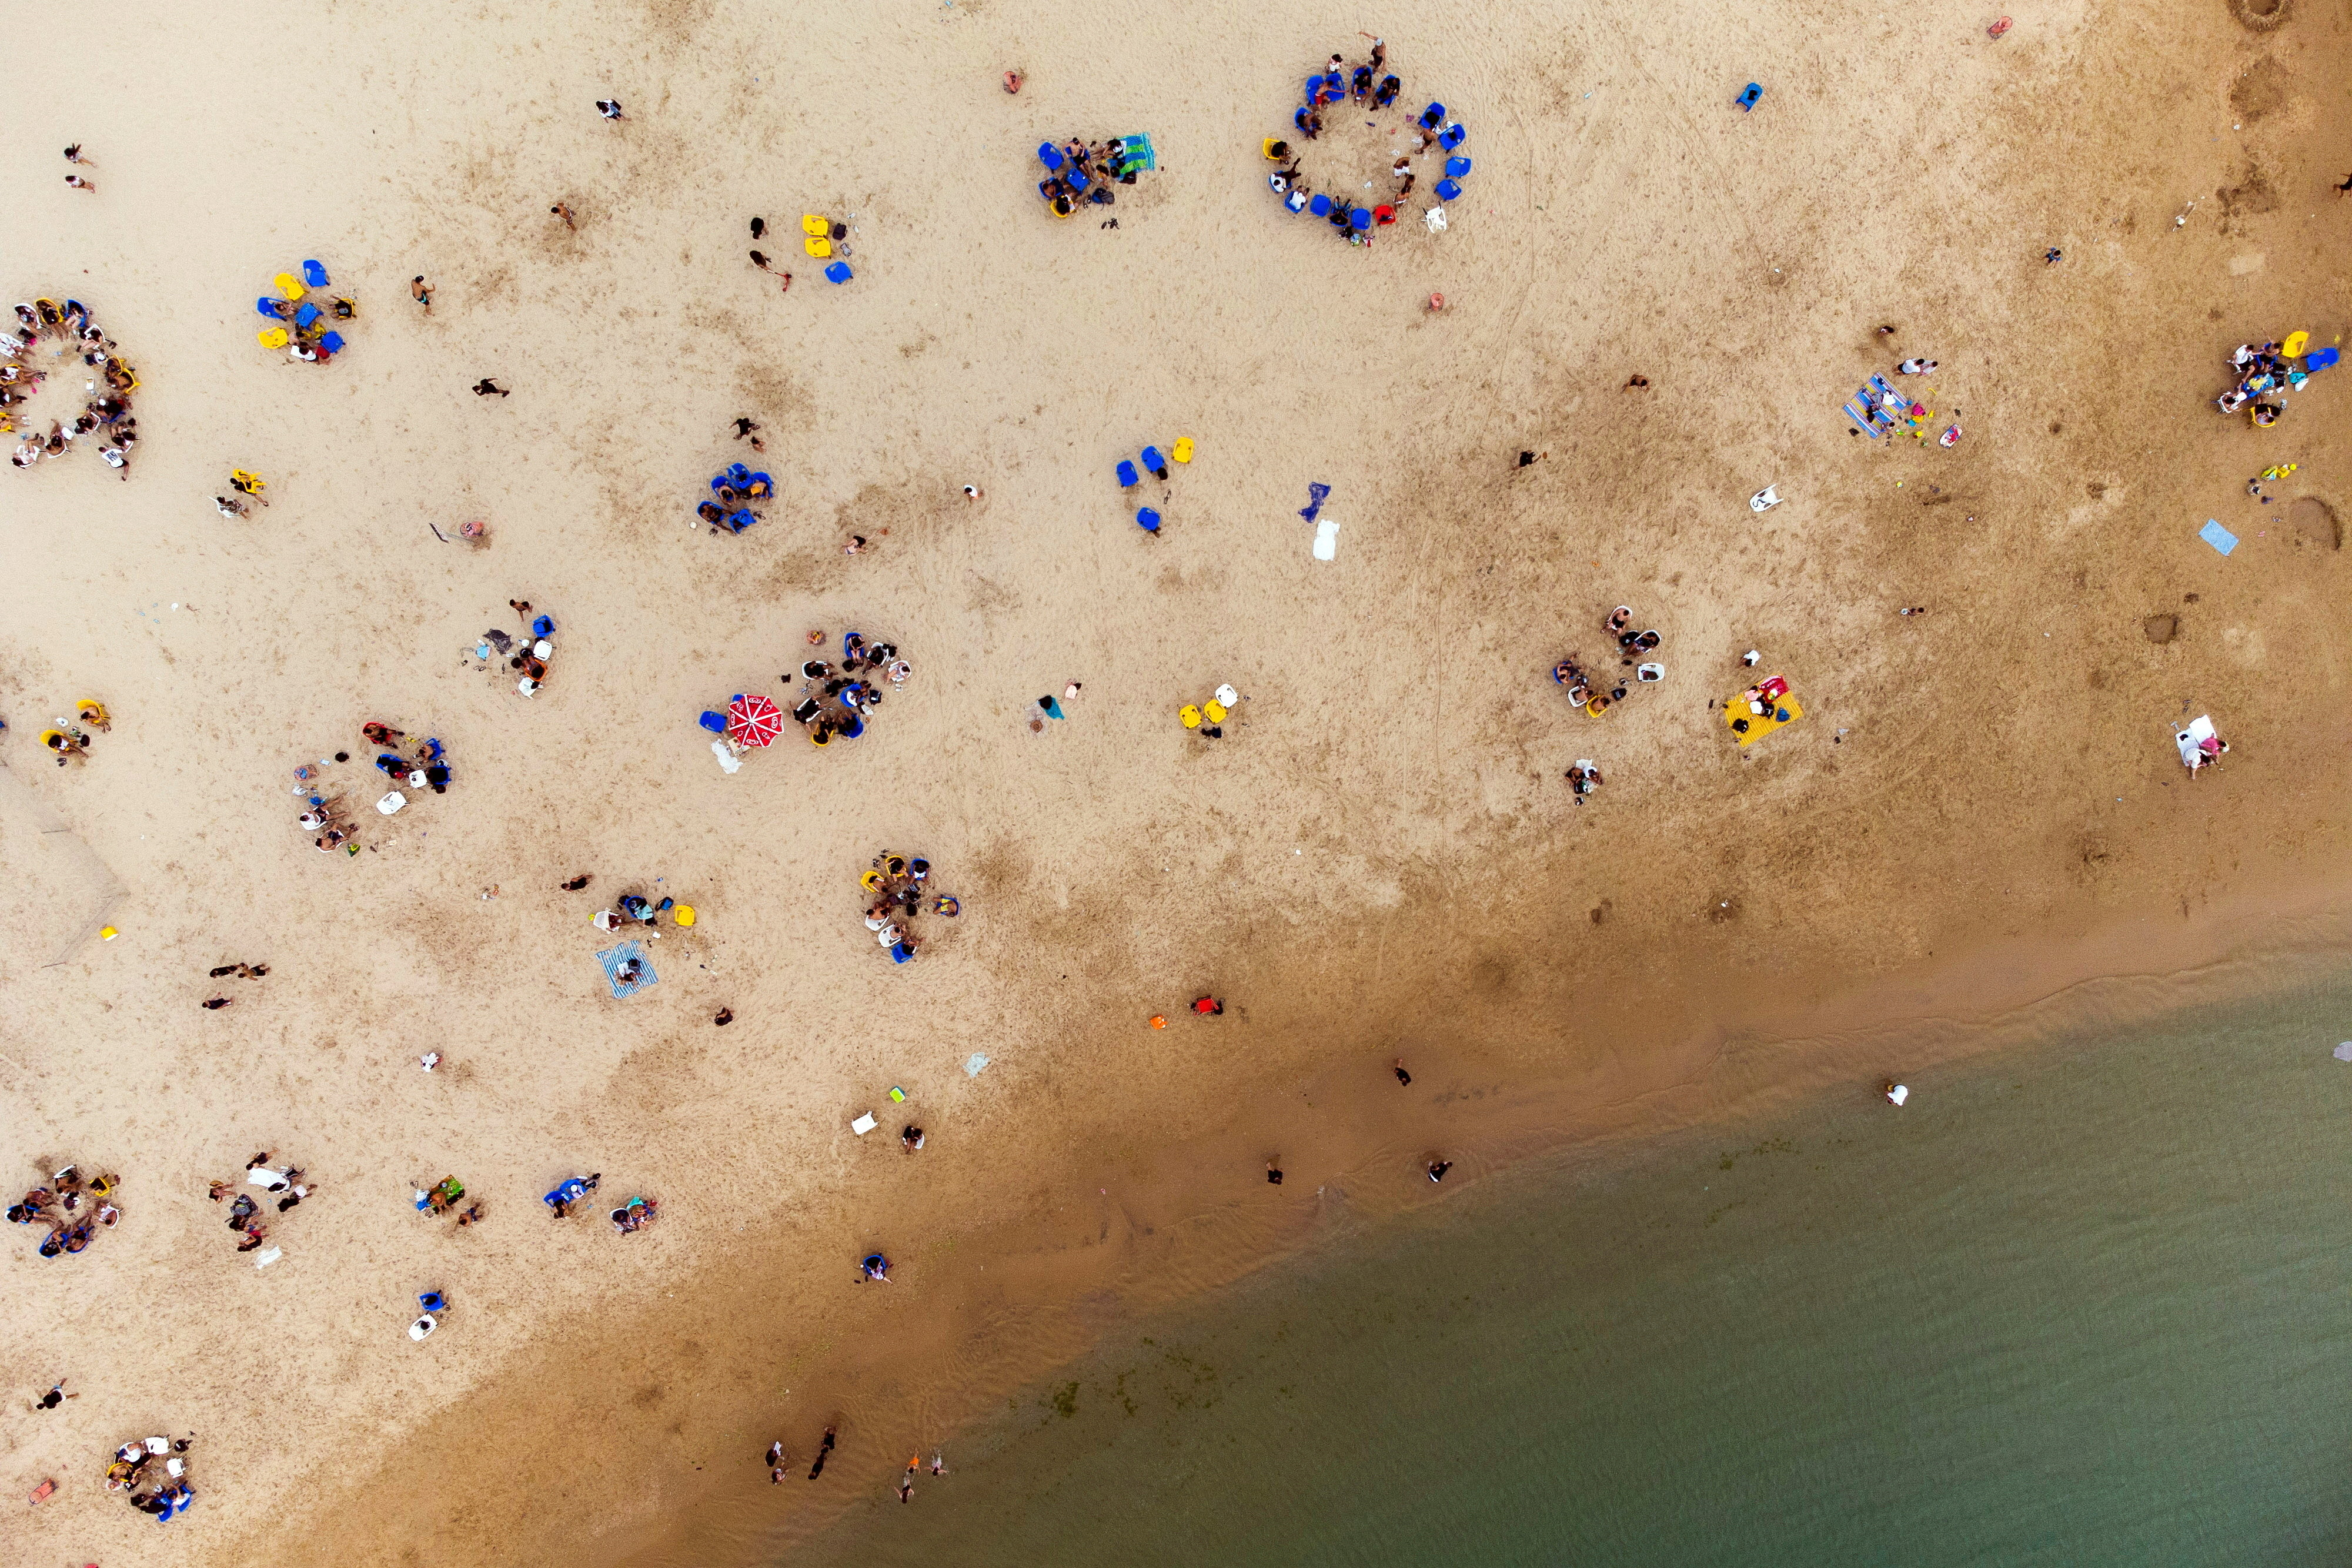 Israelis enjoy the beach of the Mediterranean during a heat wave as coronavirus disease (COVID-19) restrictions ease around the country, in Ashkelon Israel April 19, 2021.